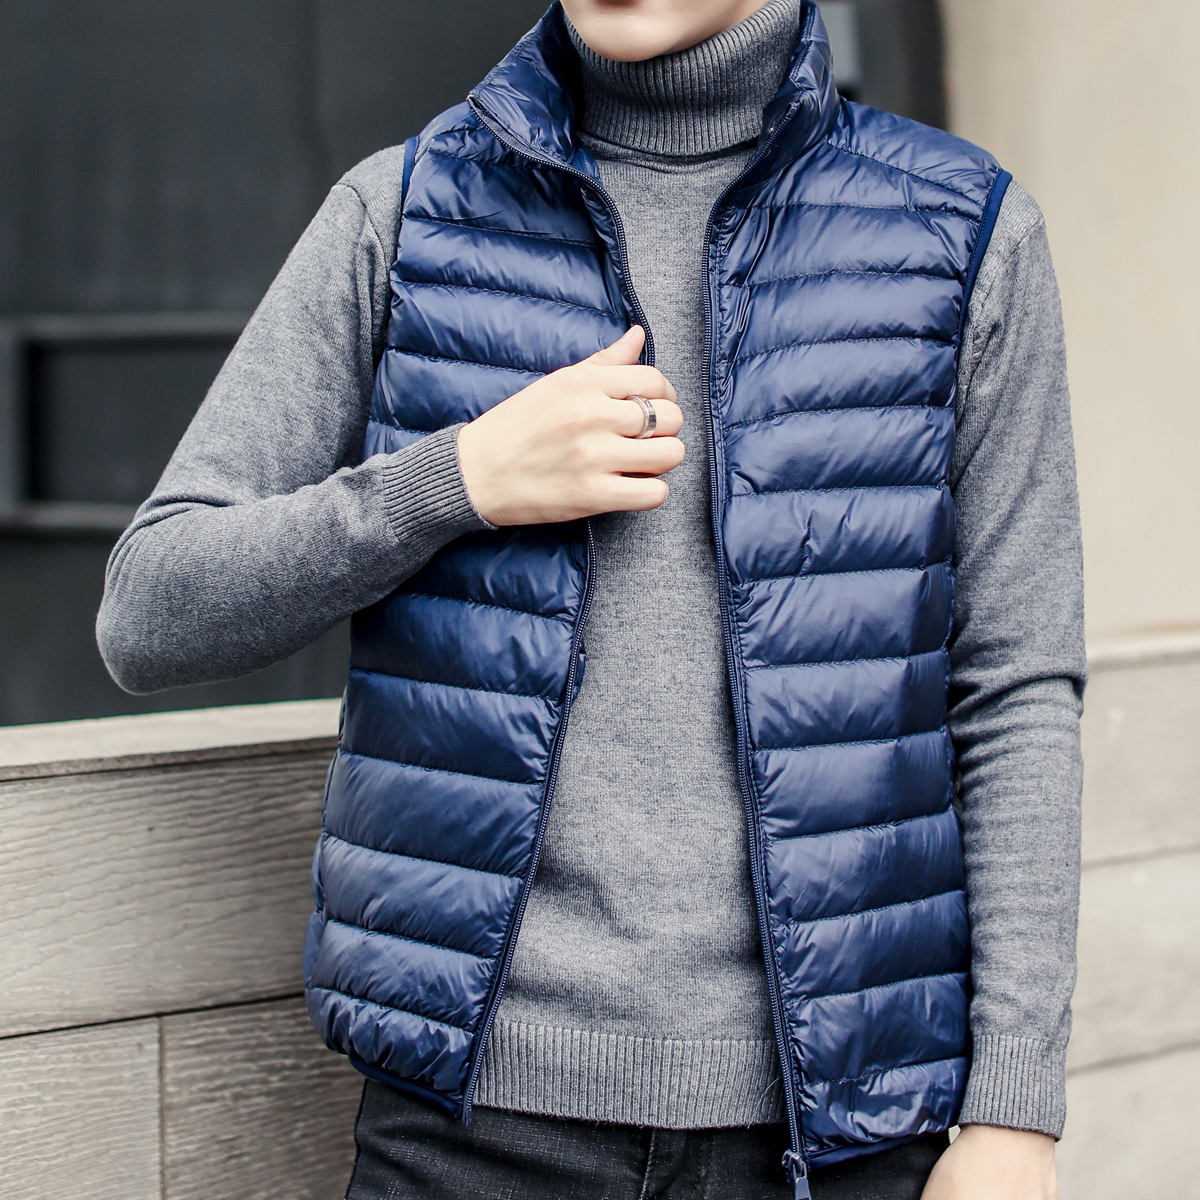 Winter thin solid color ultra light large size Down goose feather Coat men Man Vest zipper men 39 s clothing high quality hot sale in Down Jackets from Men 39 s Clothing